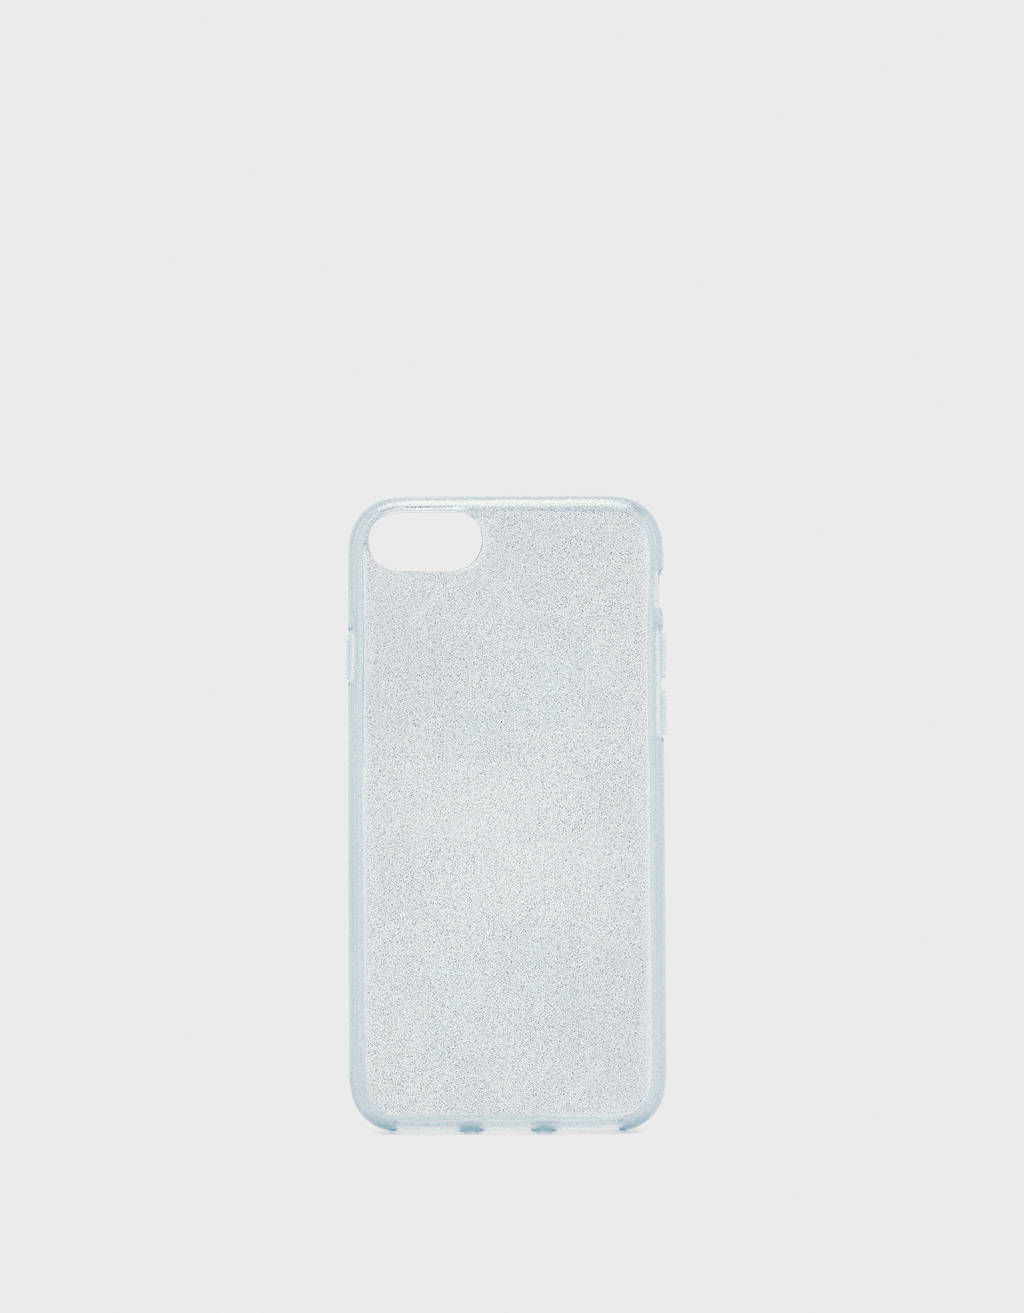 Glitter iPhone 6 / 7 / 8 case